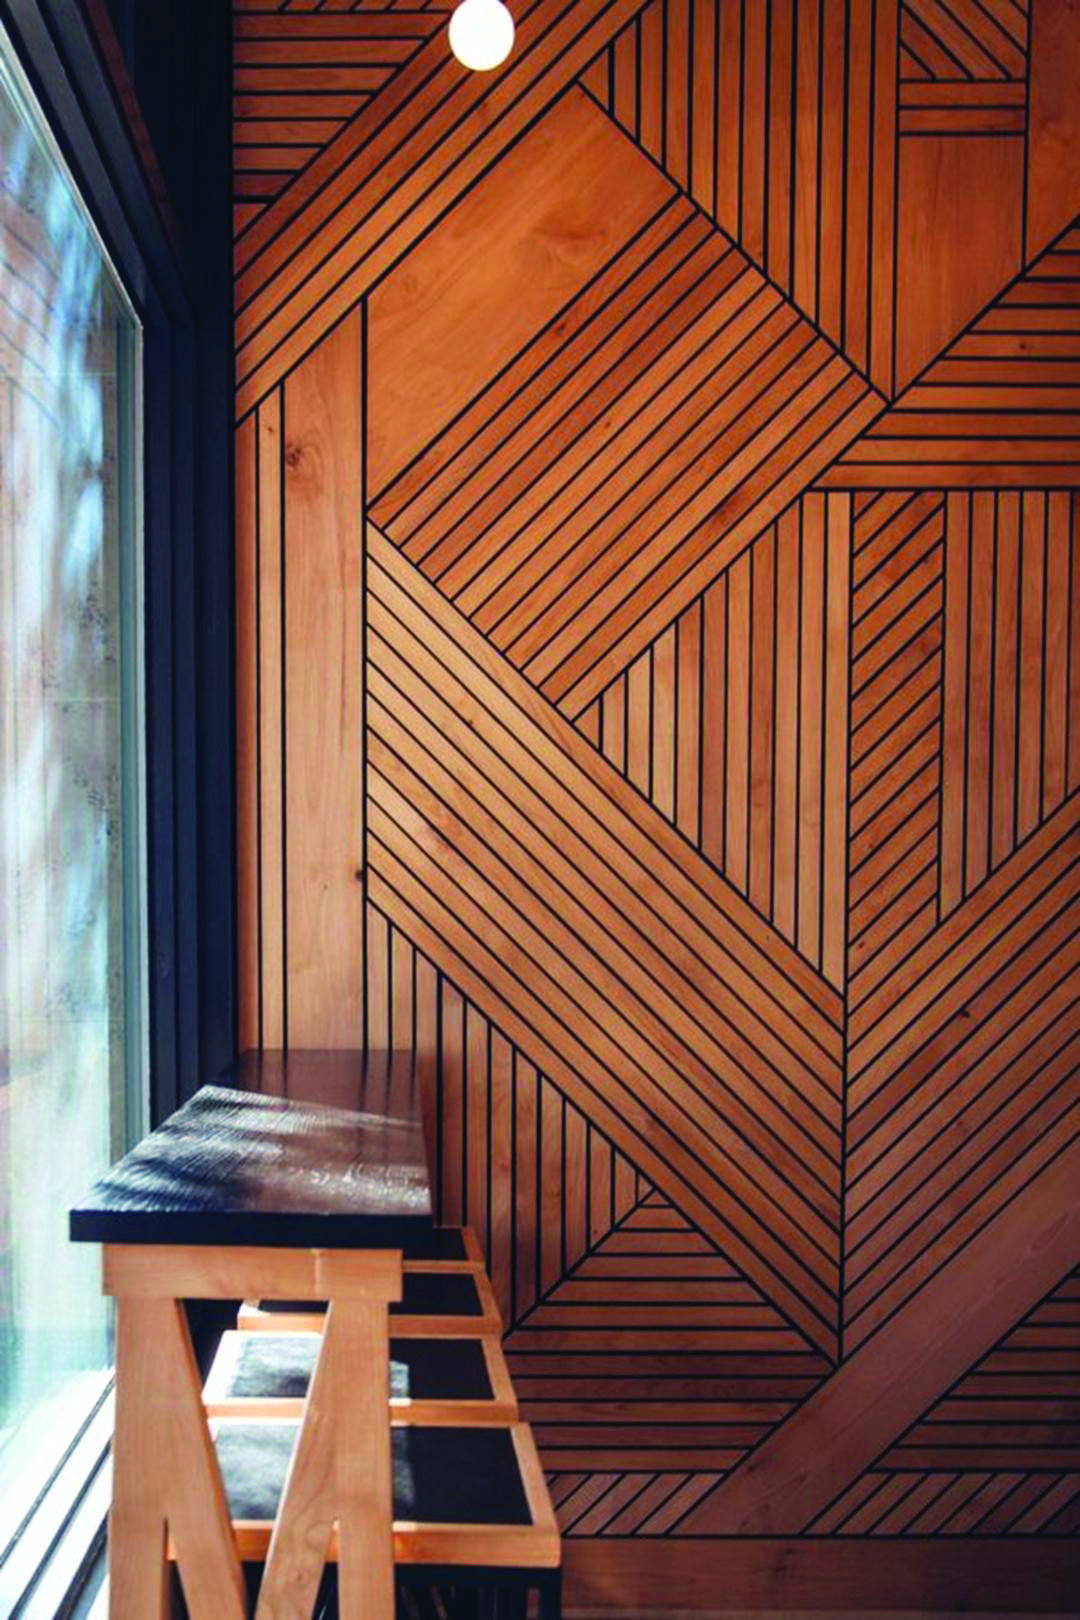 Super Creative 1 4 Plywood Wall Paneling Just On Home Design Ideas Site Wood Cladding Interior Wood Wall Covering Wooden Wall Panels